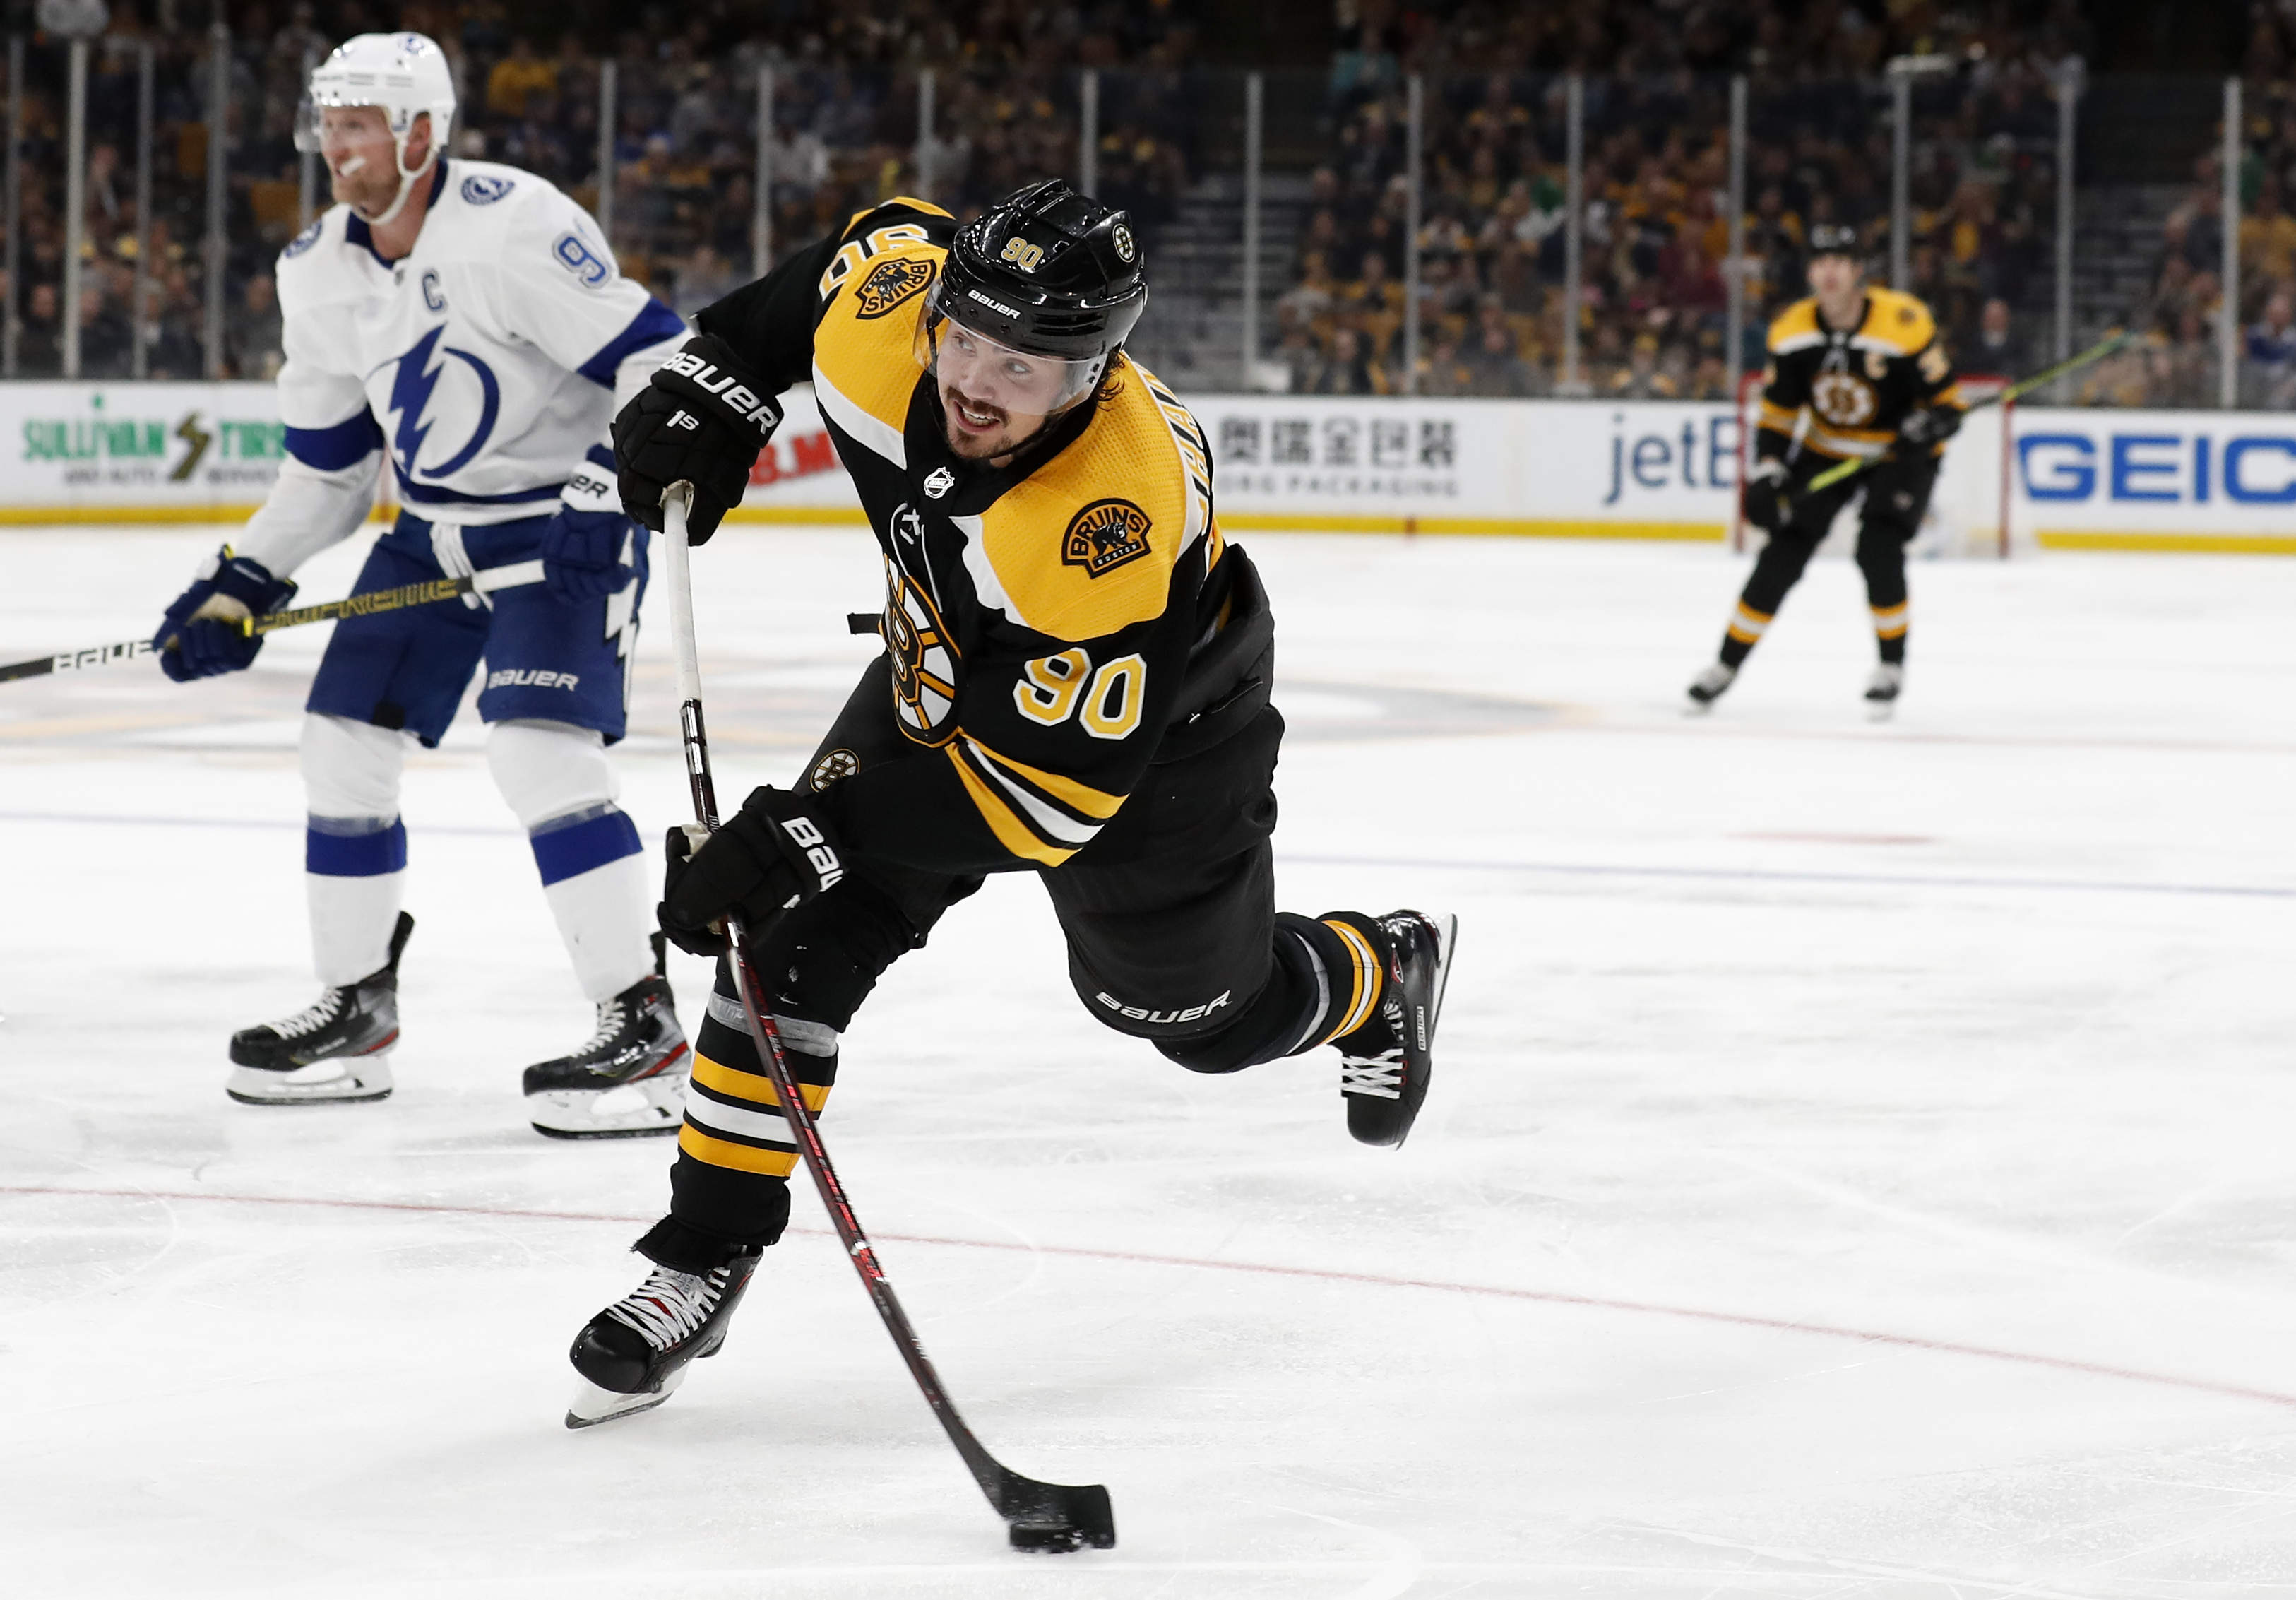 Bruins forward Marcus Johansson was scratched for Game 2